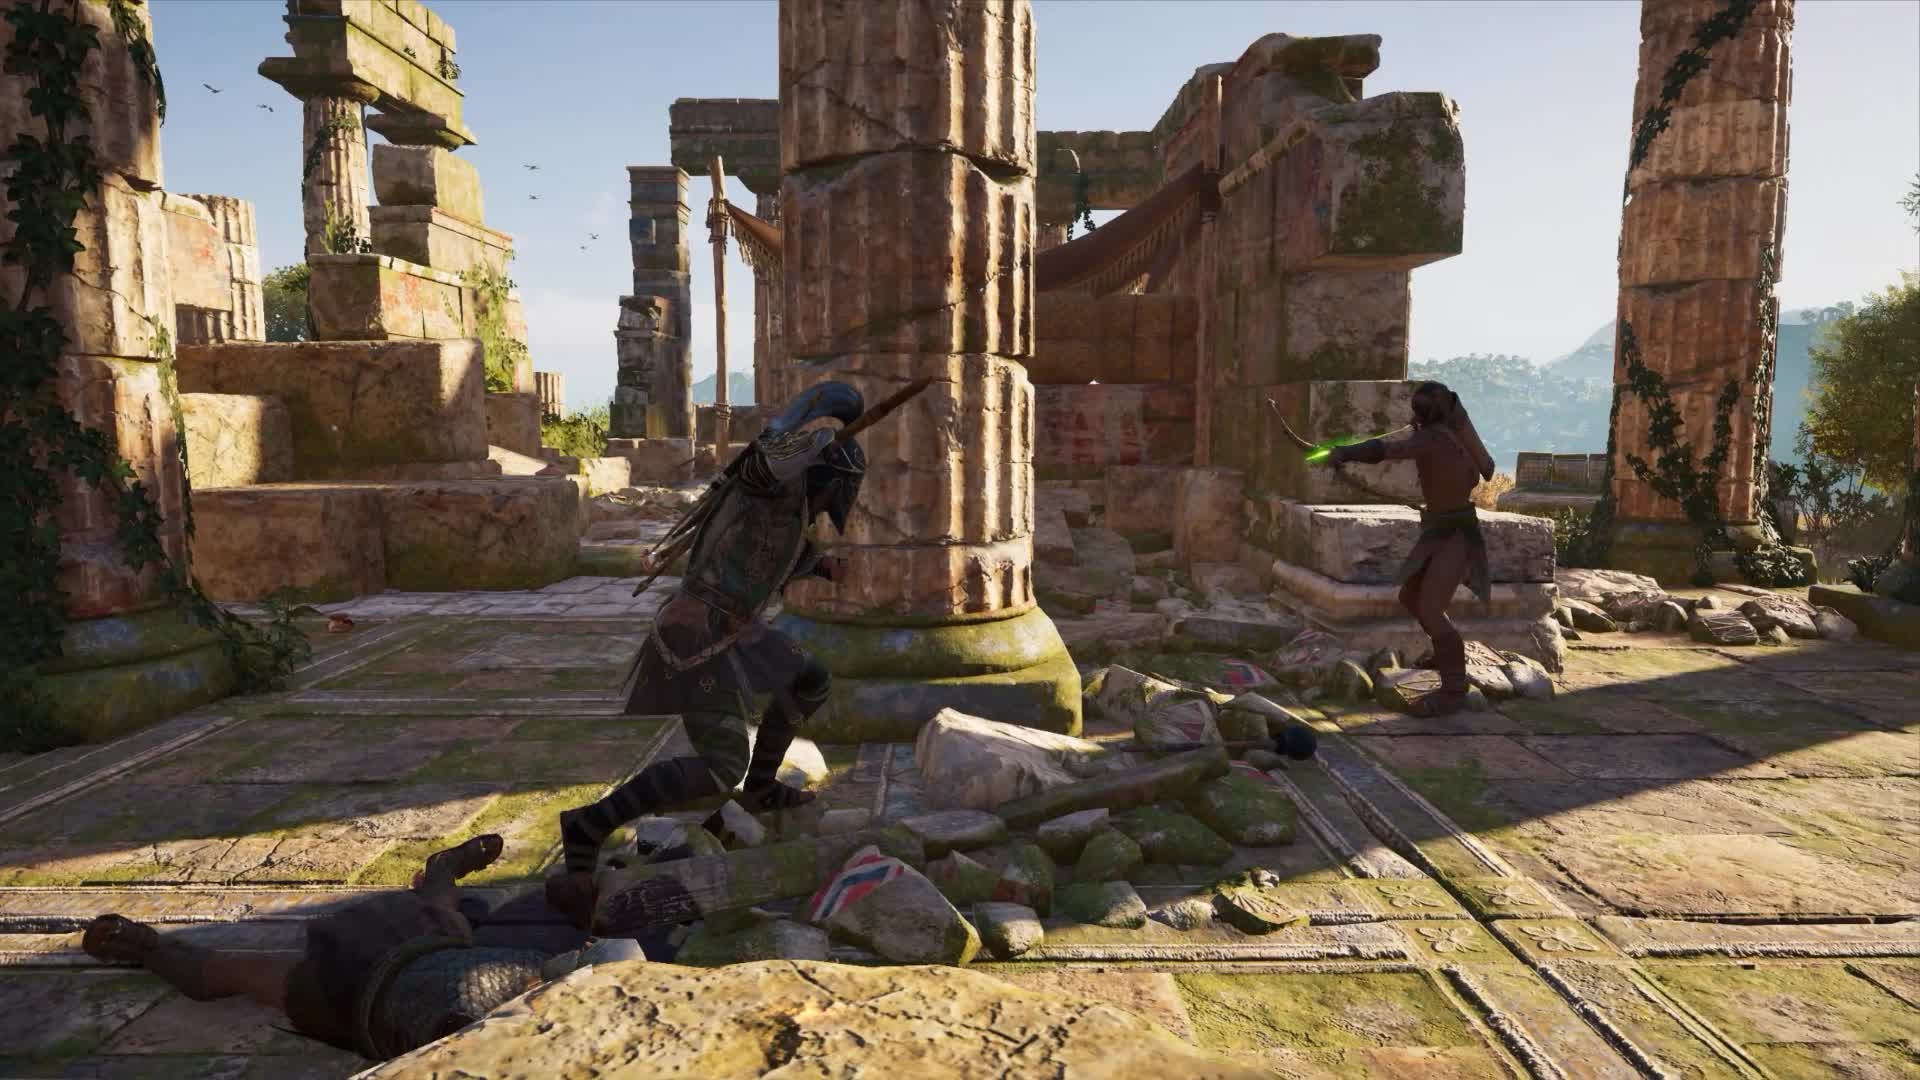 Assassin's Creed Odyssey 2018.12.26 - 00.14.46.53 GIFs